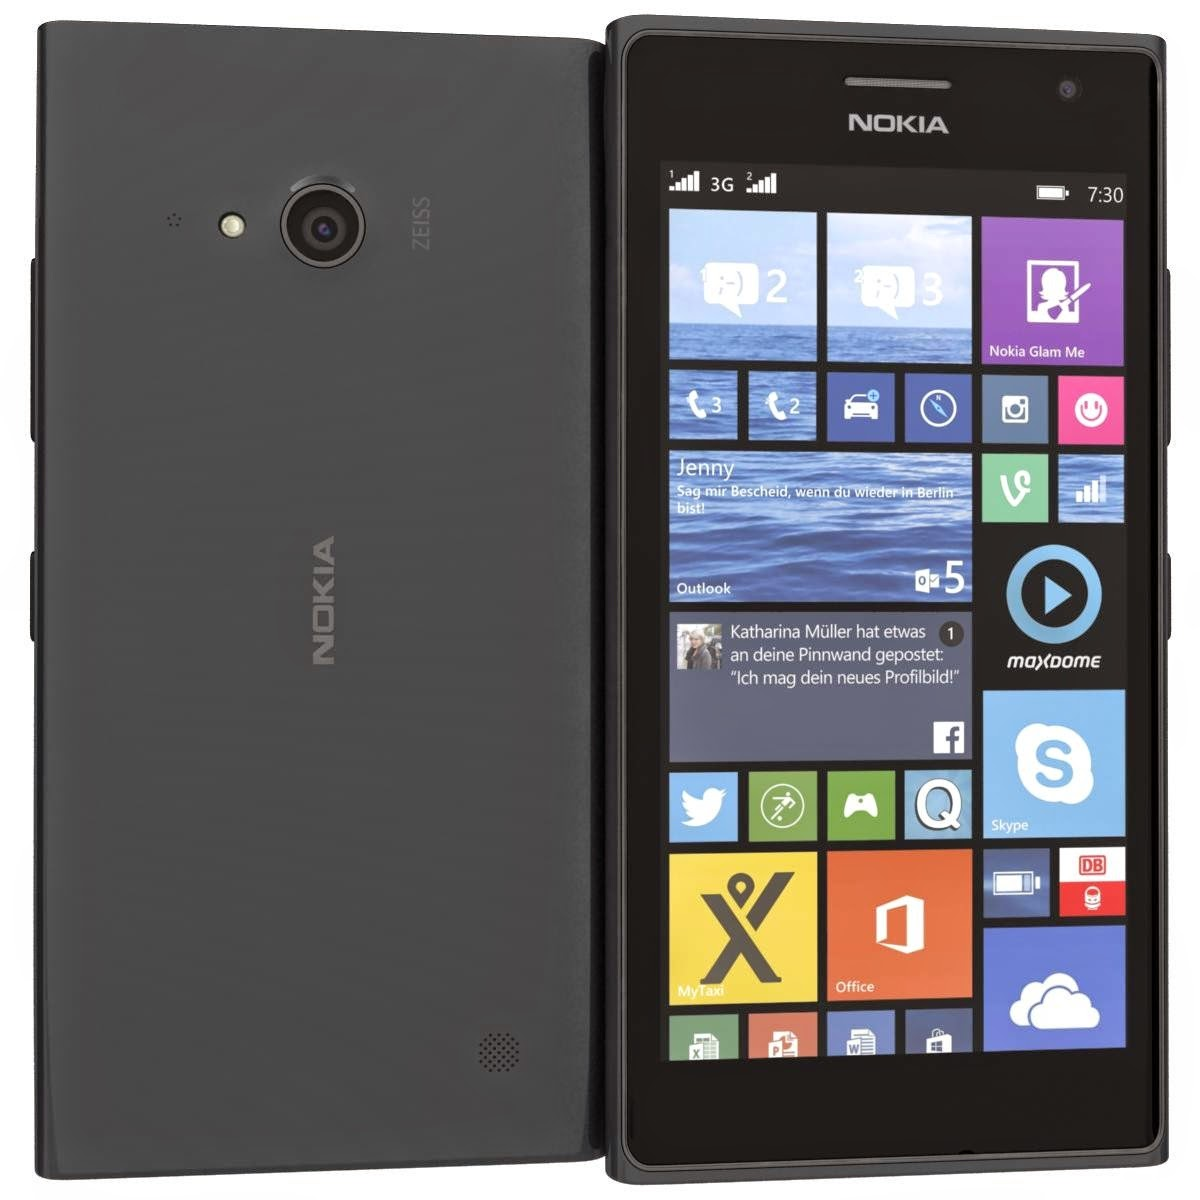 Nokia Lumia 730 Quad-core Windows Phone P11,990 SRP